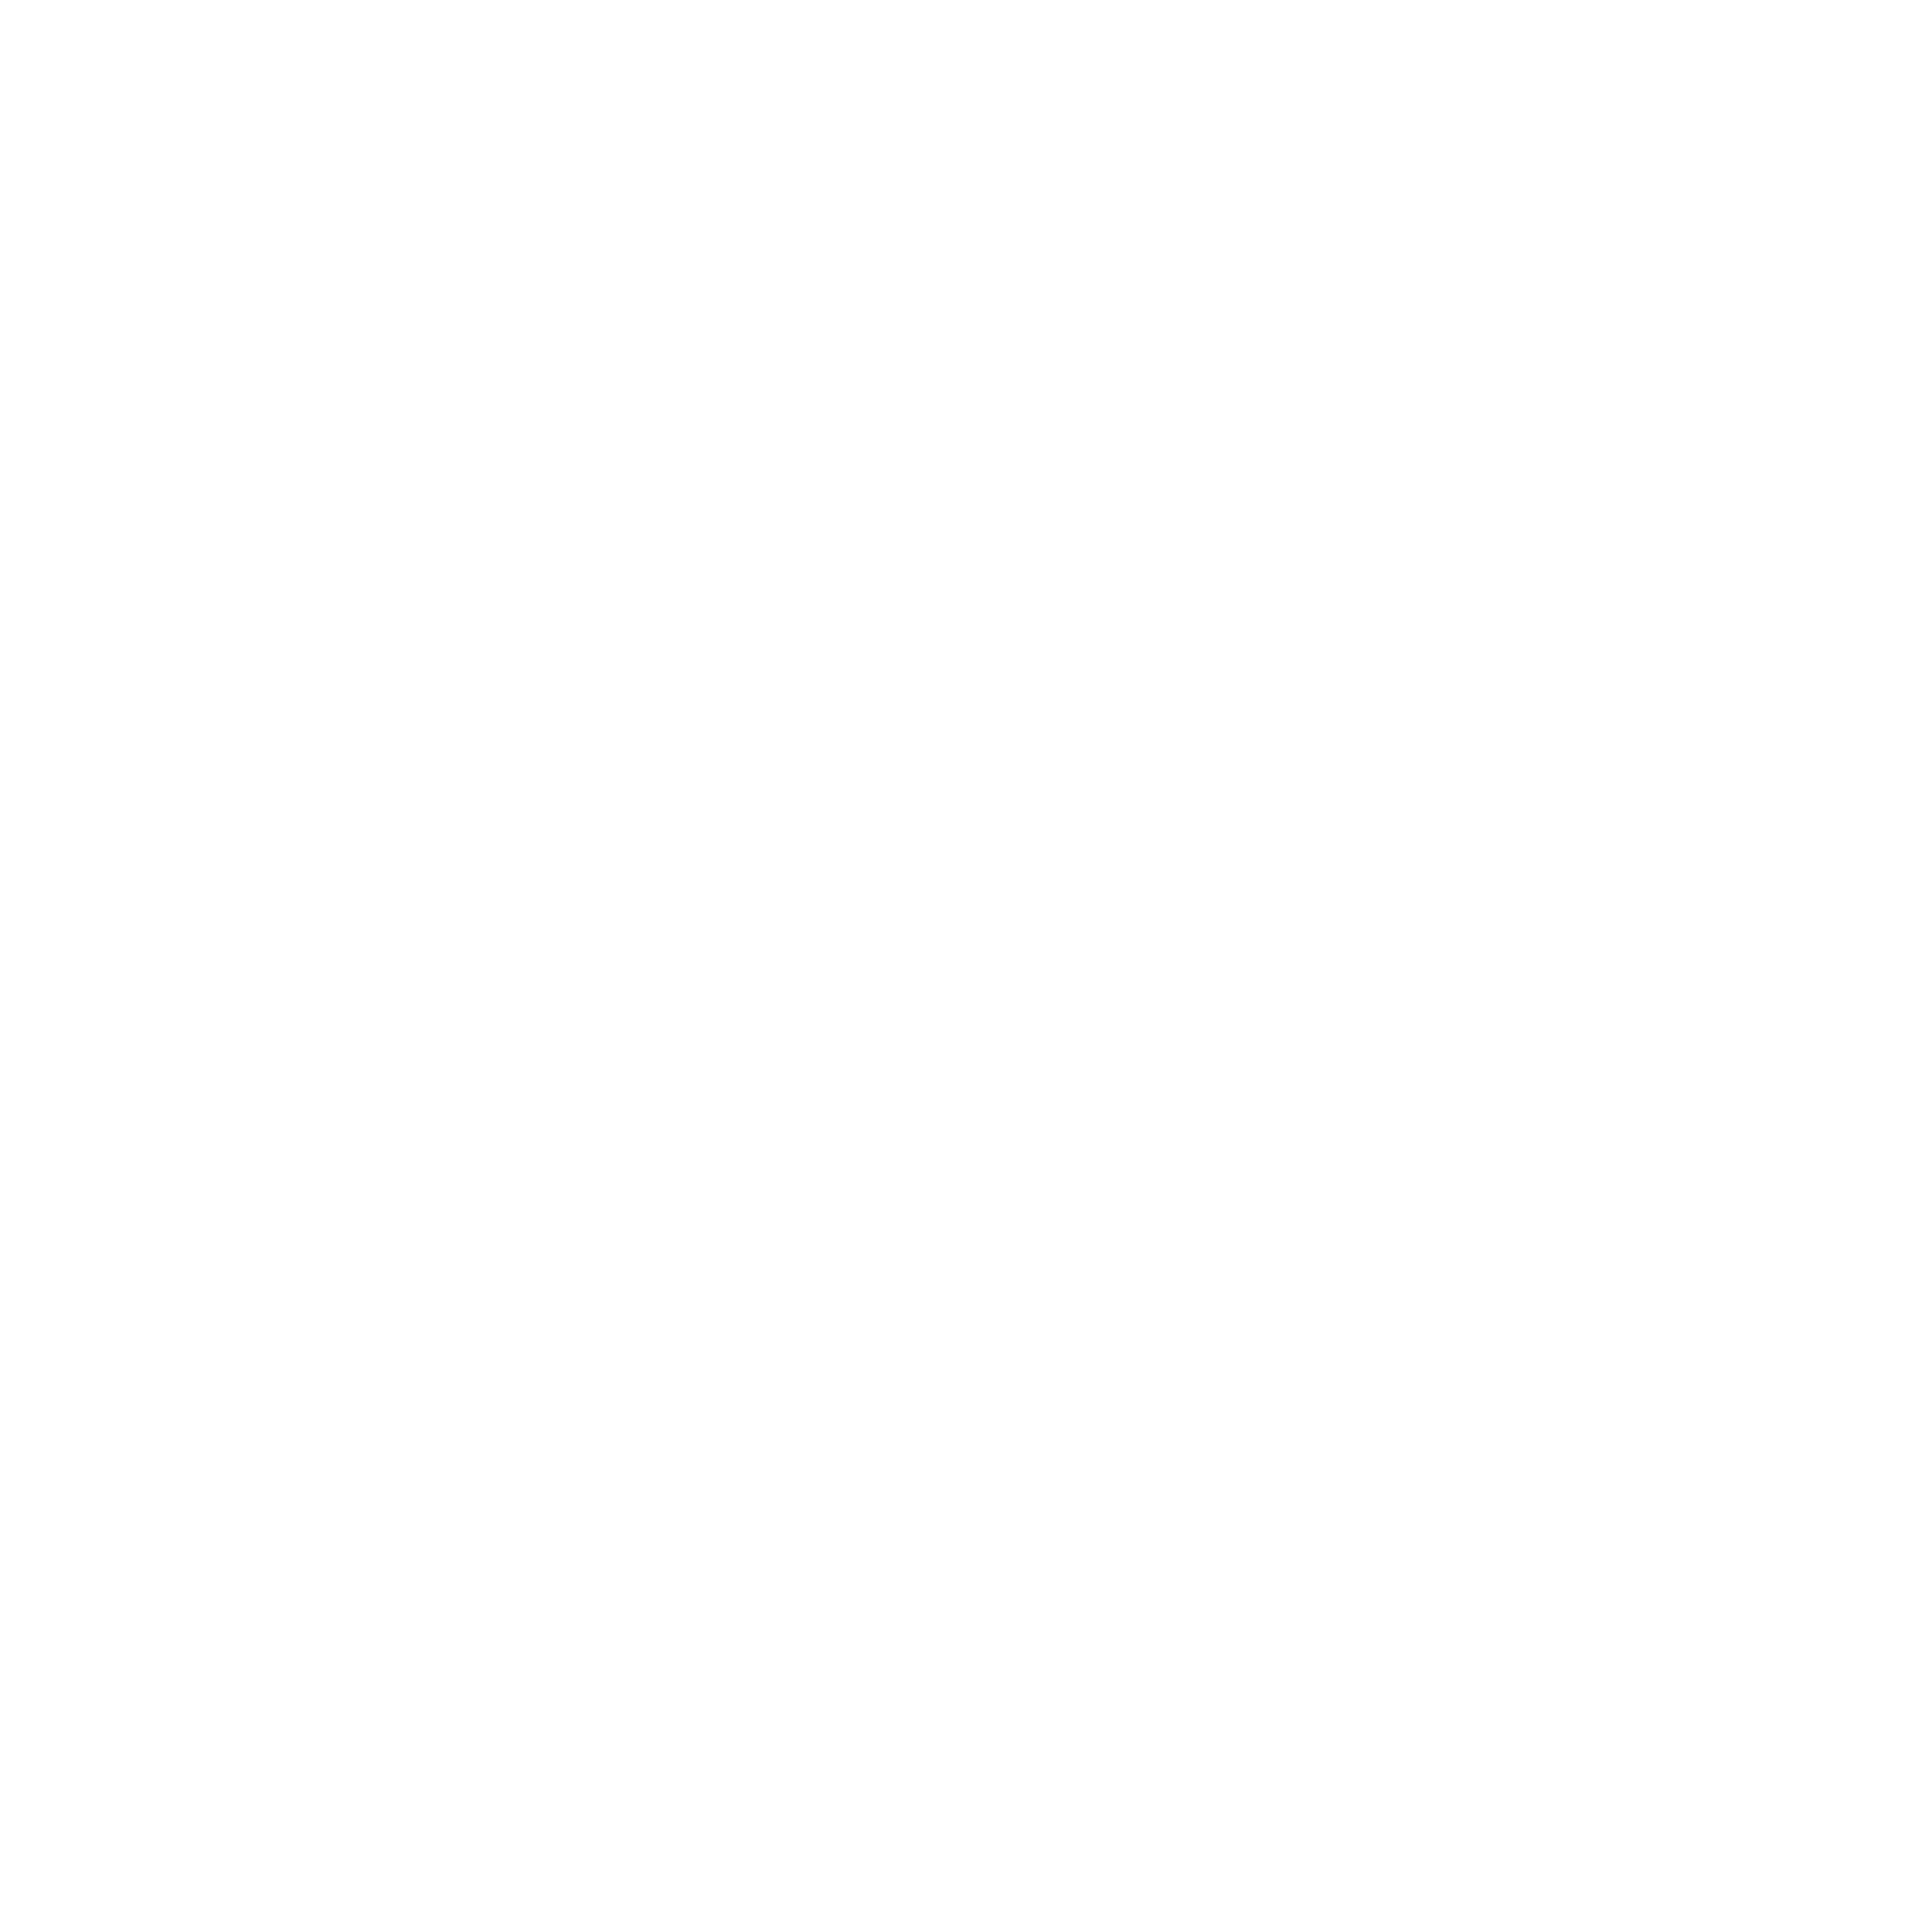 White snowflake clipart no background clipart black and white stock Snowflakes PNG Image - PurePNG | Free transparent CC0 PNG Image Library clipart black and white stock